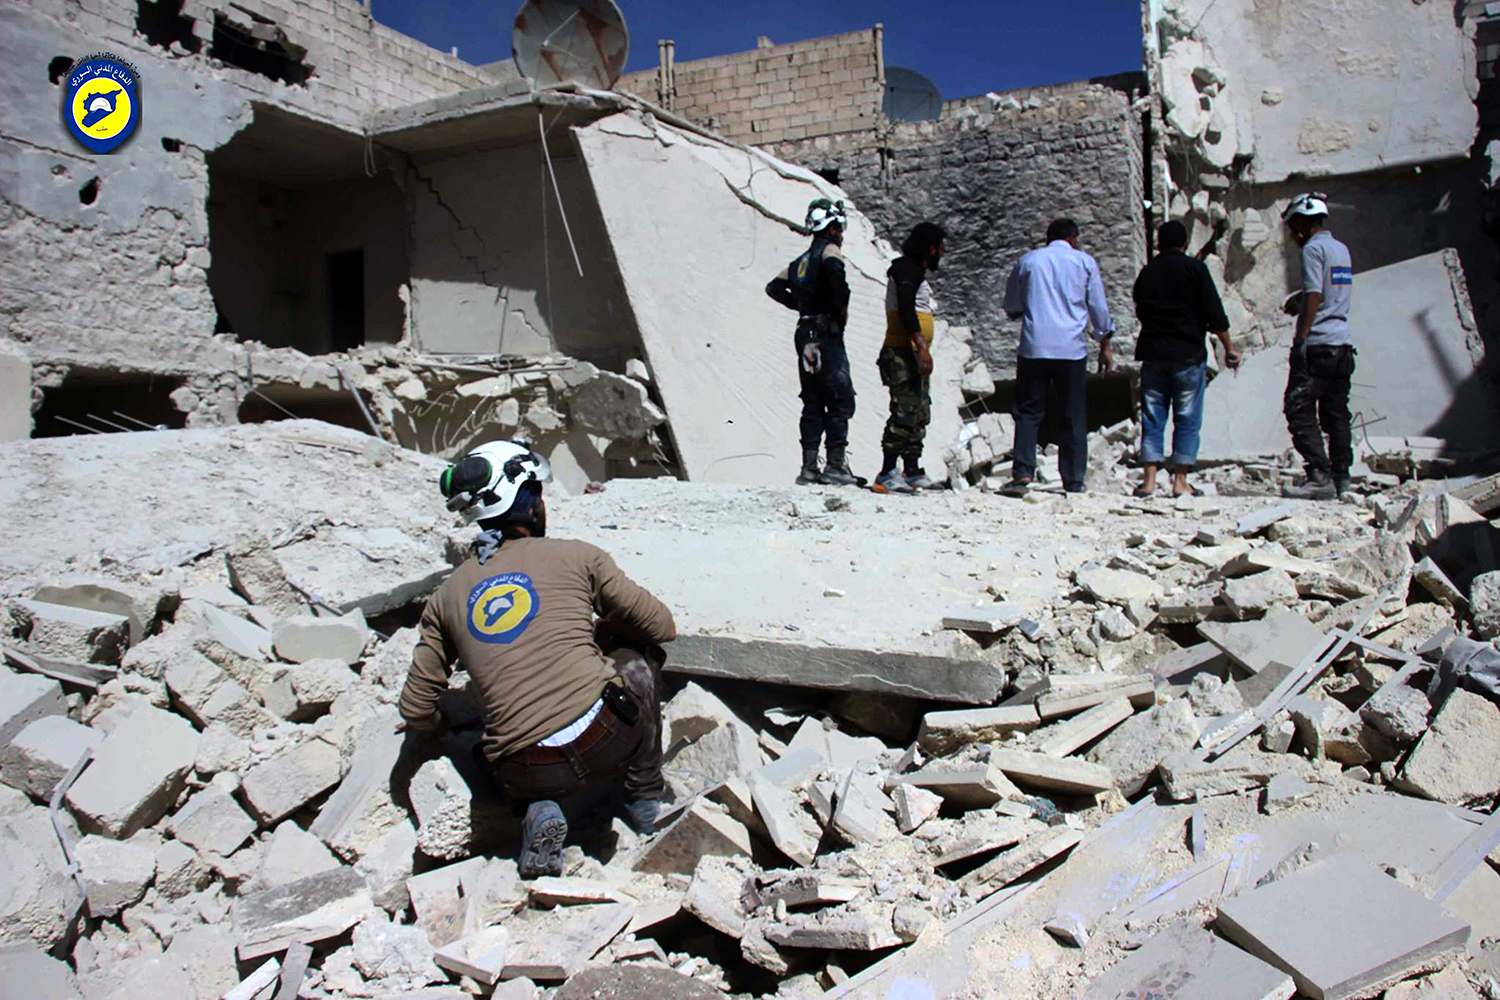 """This photo provided by the Syrian Civil Defense group known as the White Helmets, shows members of Civil Defense inspecting damaged buildings after airstrikes hit the Bustan al-Qasr neighborhood of Aleppo, Syria, Sunday, Sept. 25, 2016. A broad coalition of Syrian rebels denounced international negotiations for peace as """"meaningless"""" on Sunday, as the U.N. Security Council prepared to convene an emergency meeting about the spiraling violence in Syria. (Syrian Civil Defense White Helmets via AP)"""